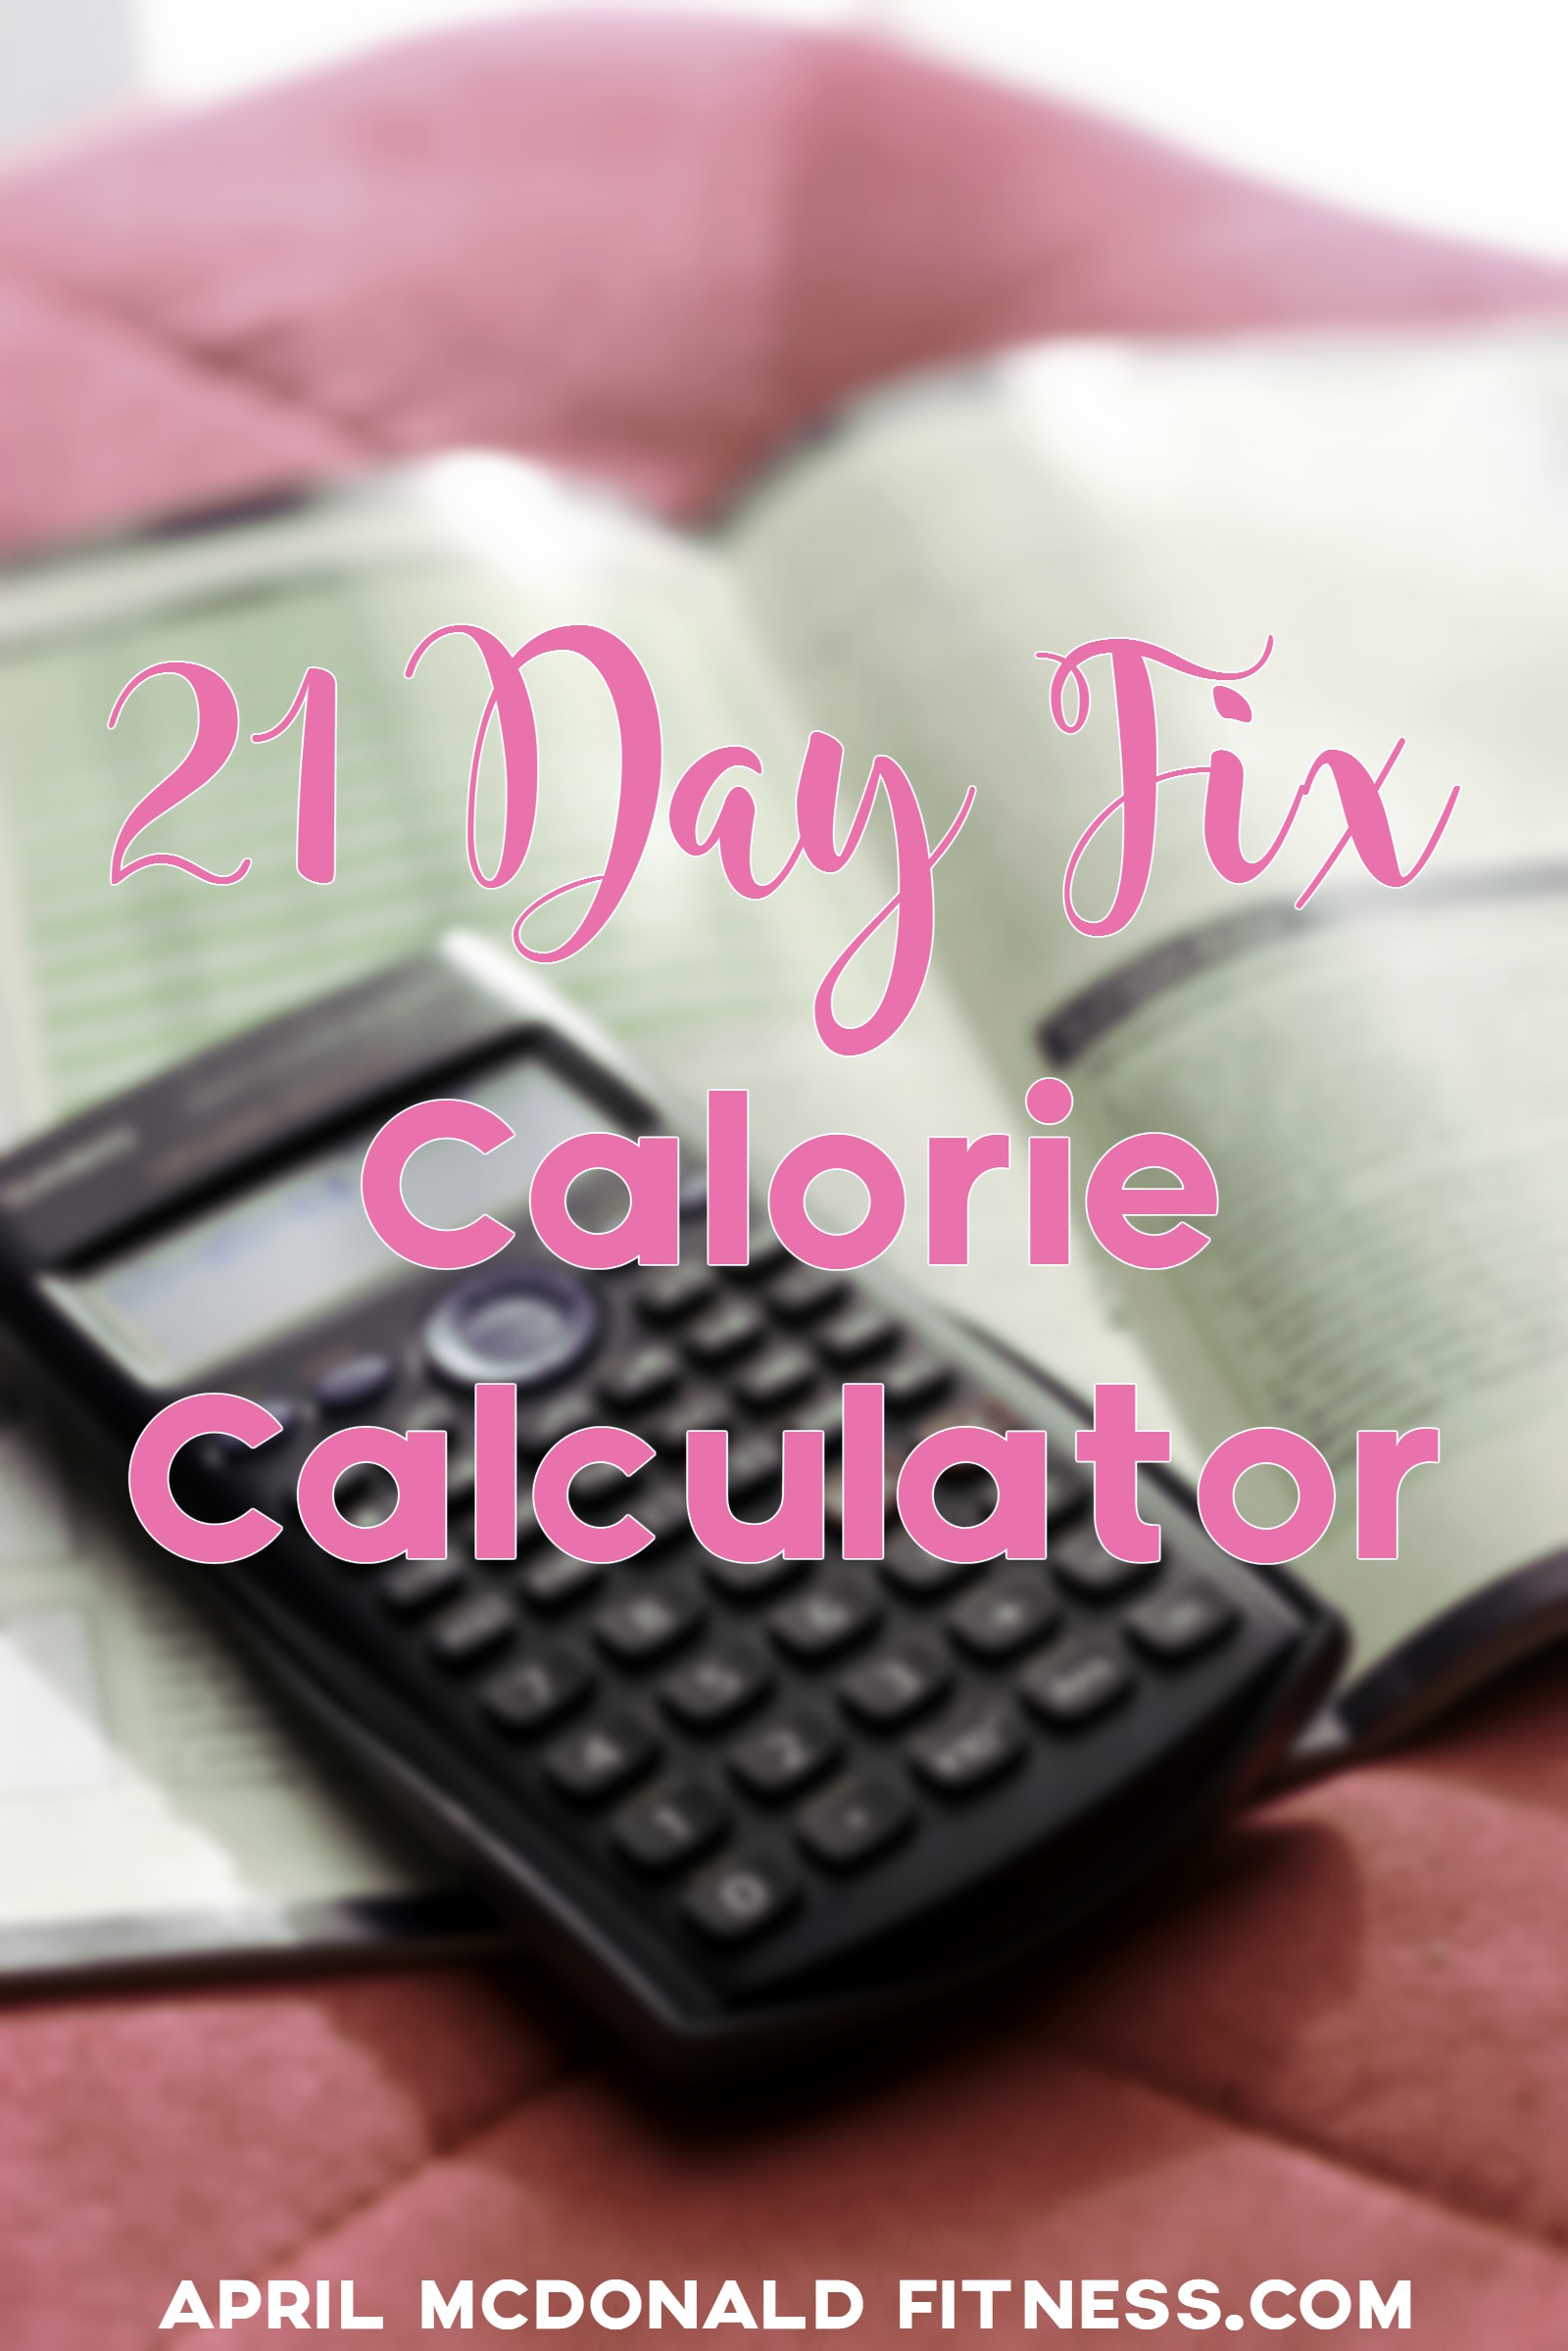 Use this calculator to figure out your allowance of caloric intake while on the 21 Day Fix.